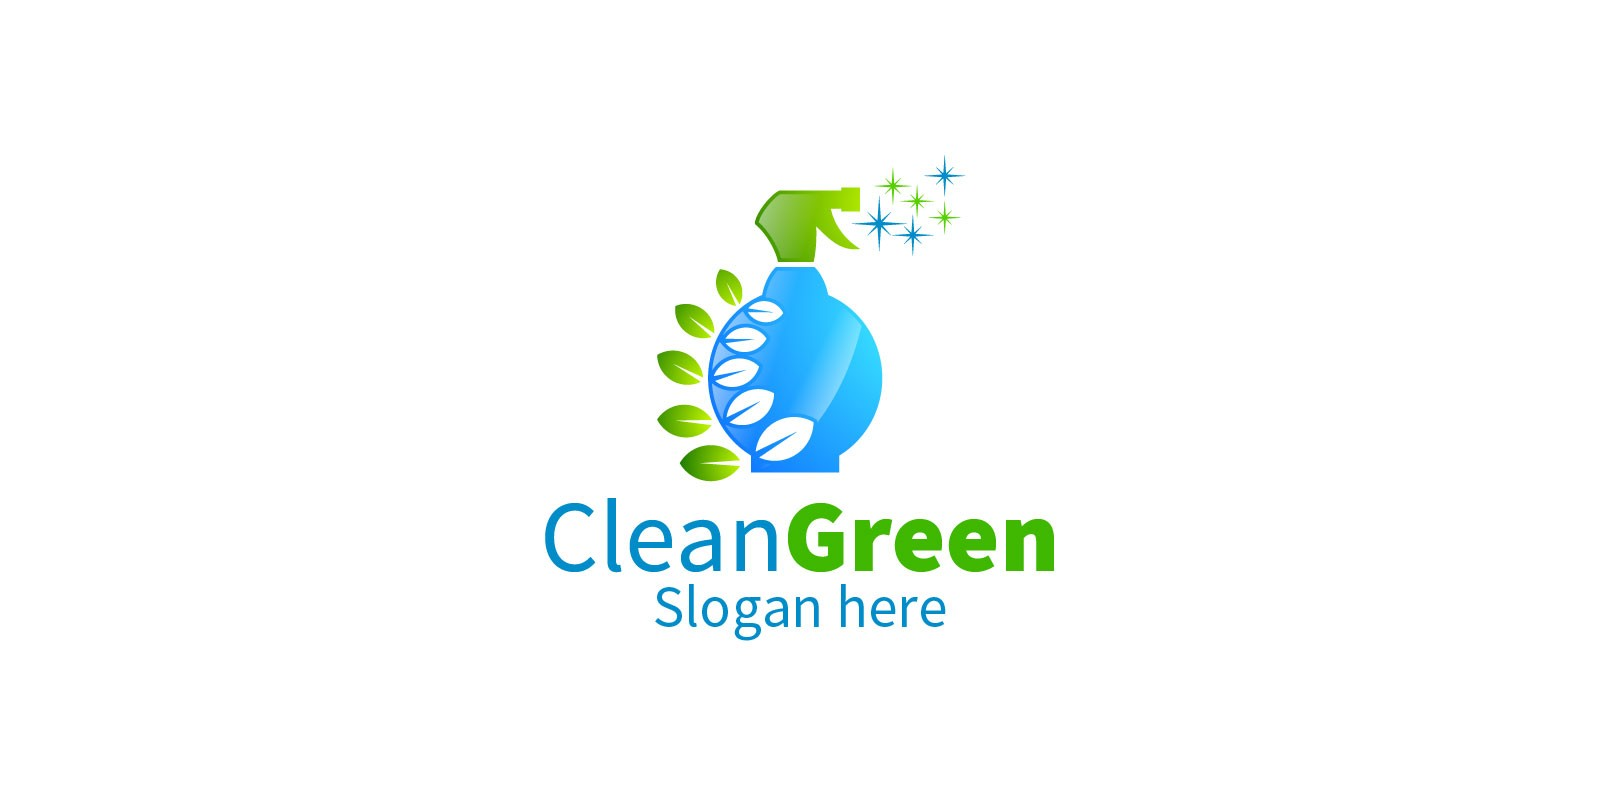 Cleaning Service Logo with Eco Friendly 22